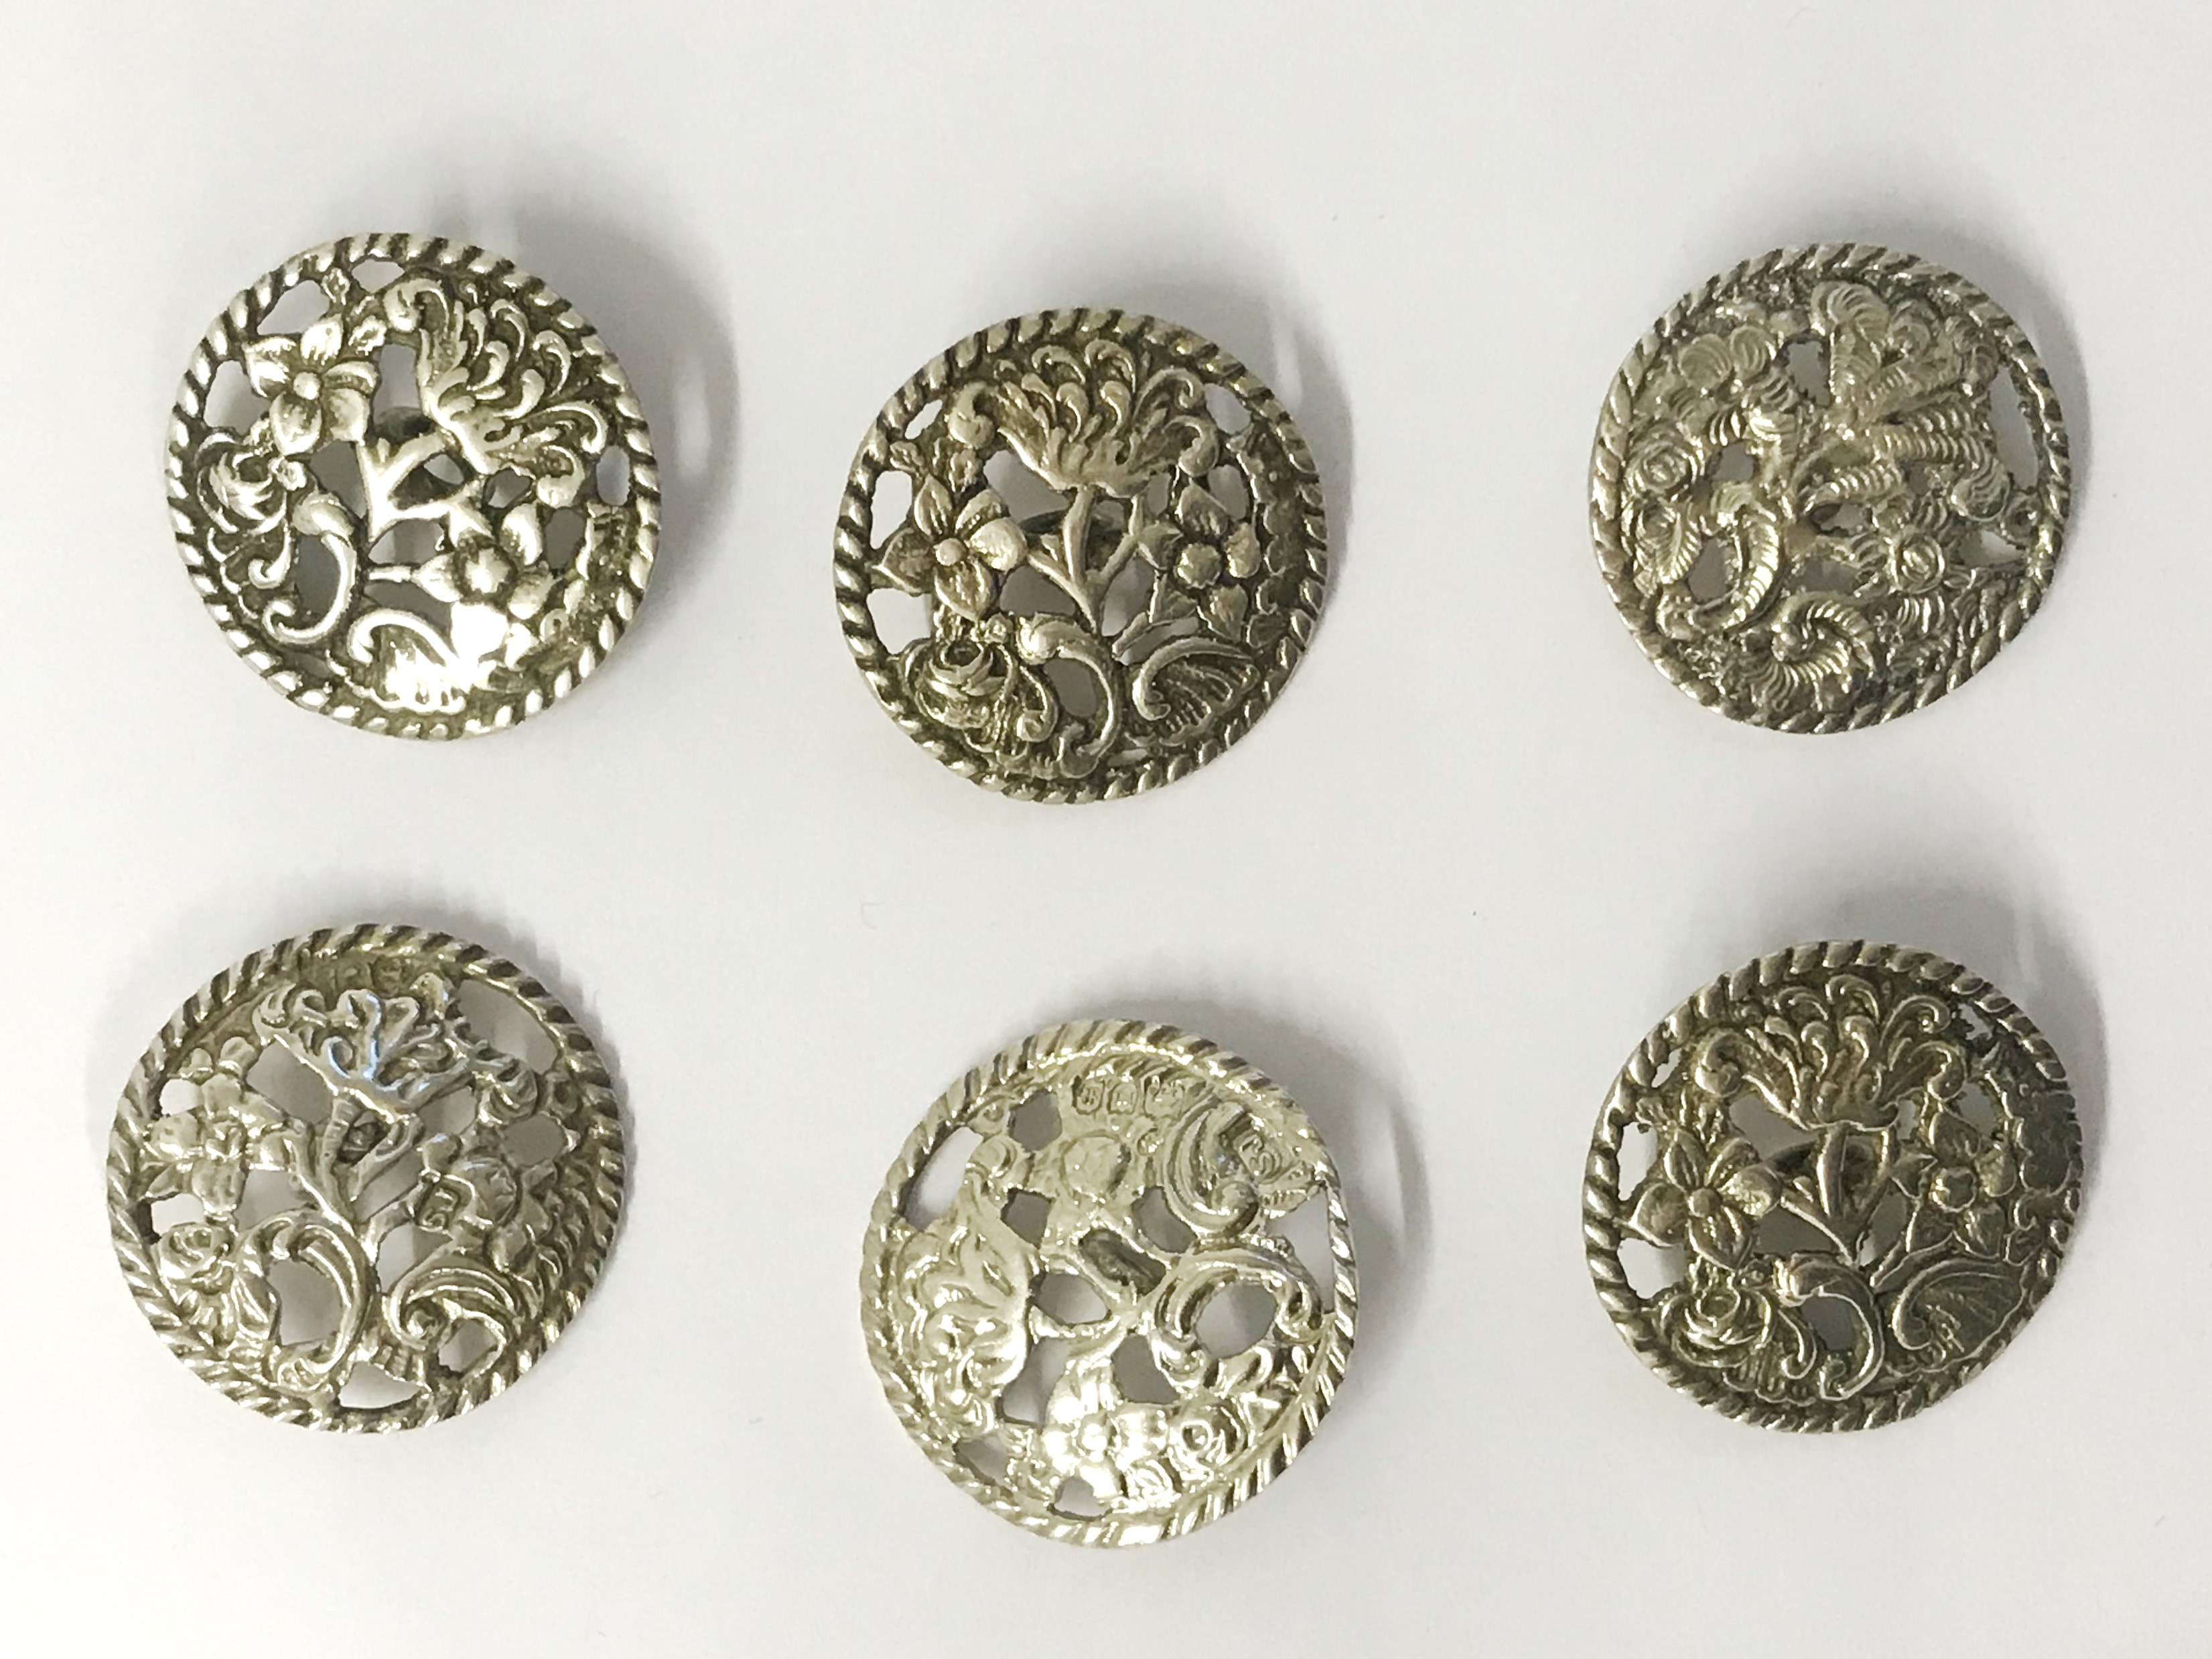 Lot 28 - Hallmarked Silver Six Buttons with Floral Pattern